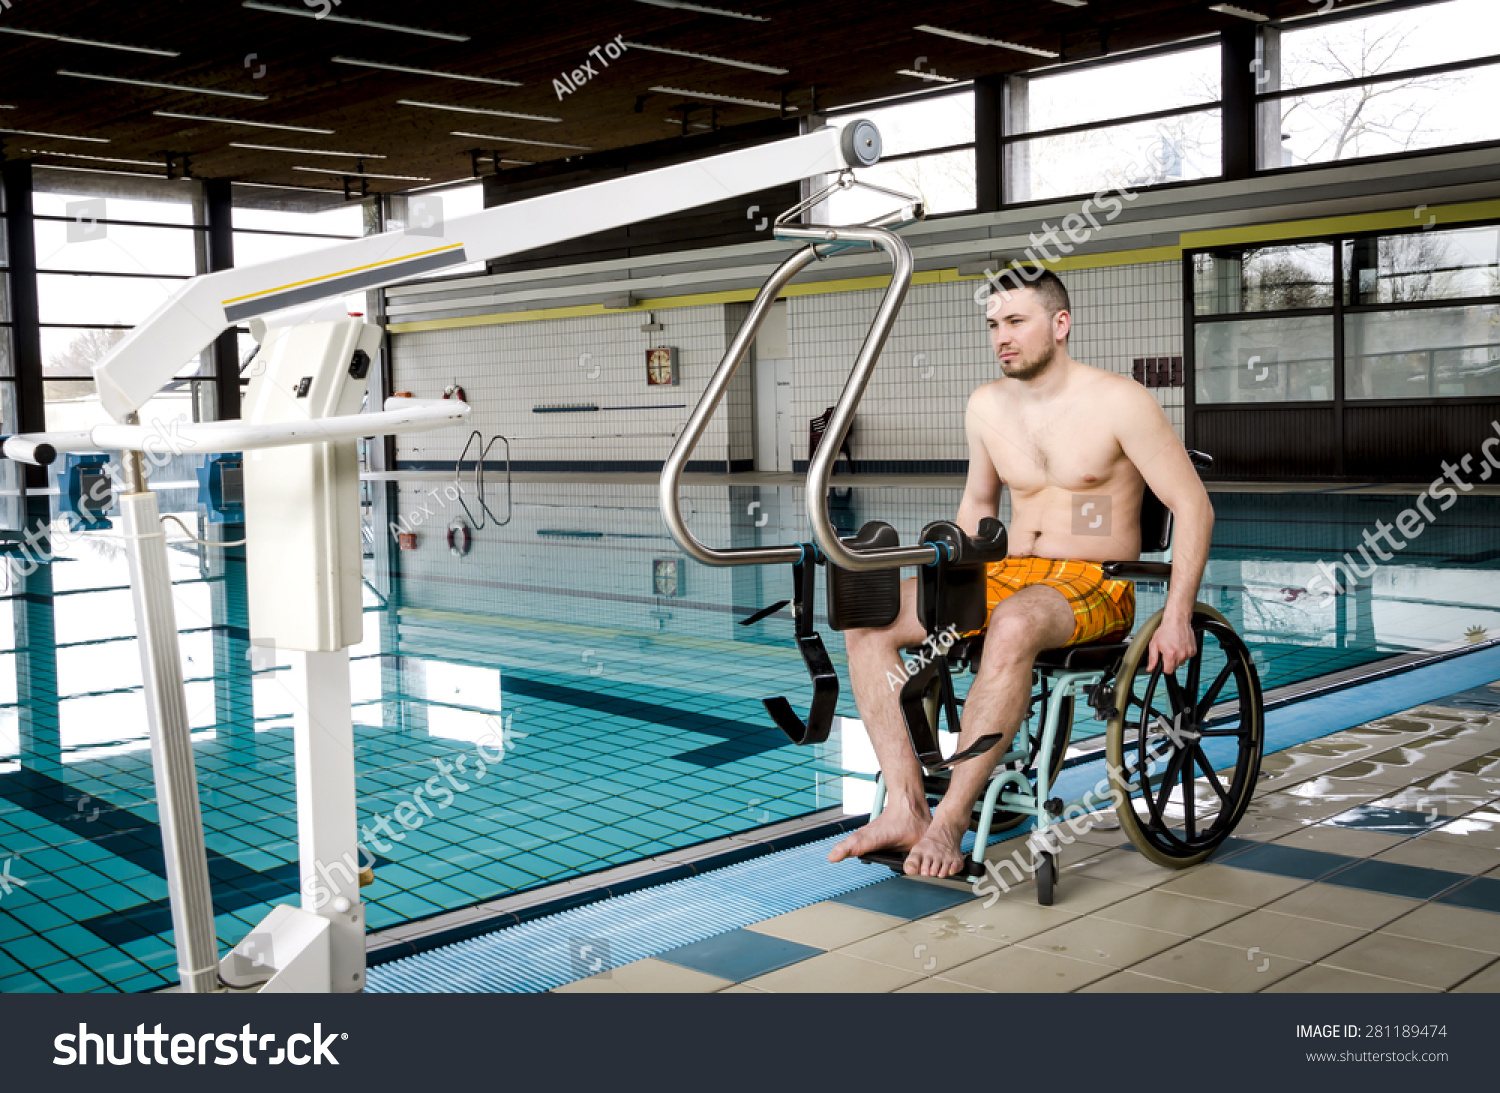 Disabled Man Swimming Pool Wheelchair Stock Photo (Edit Now ...